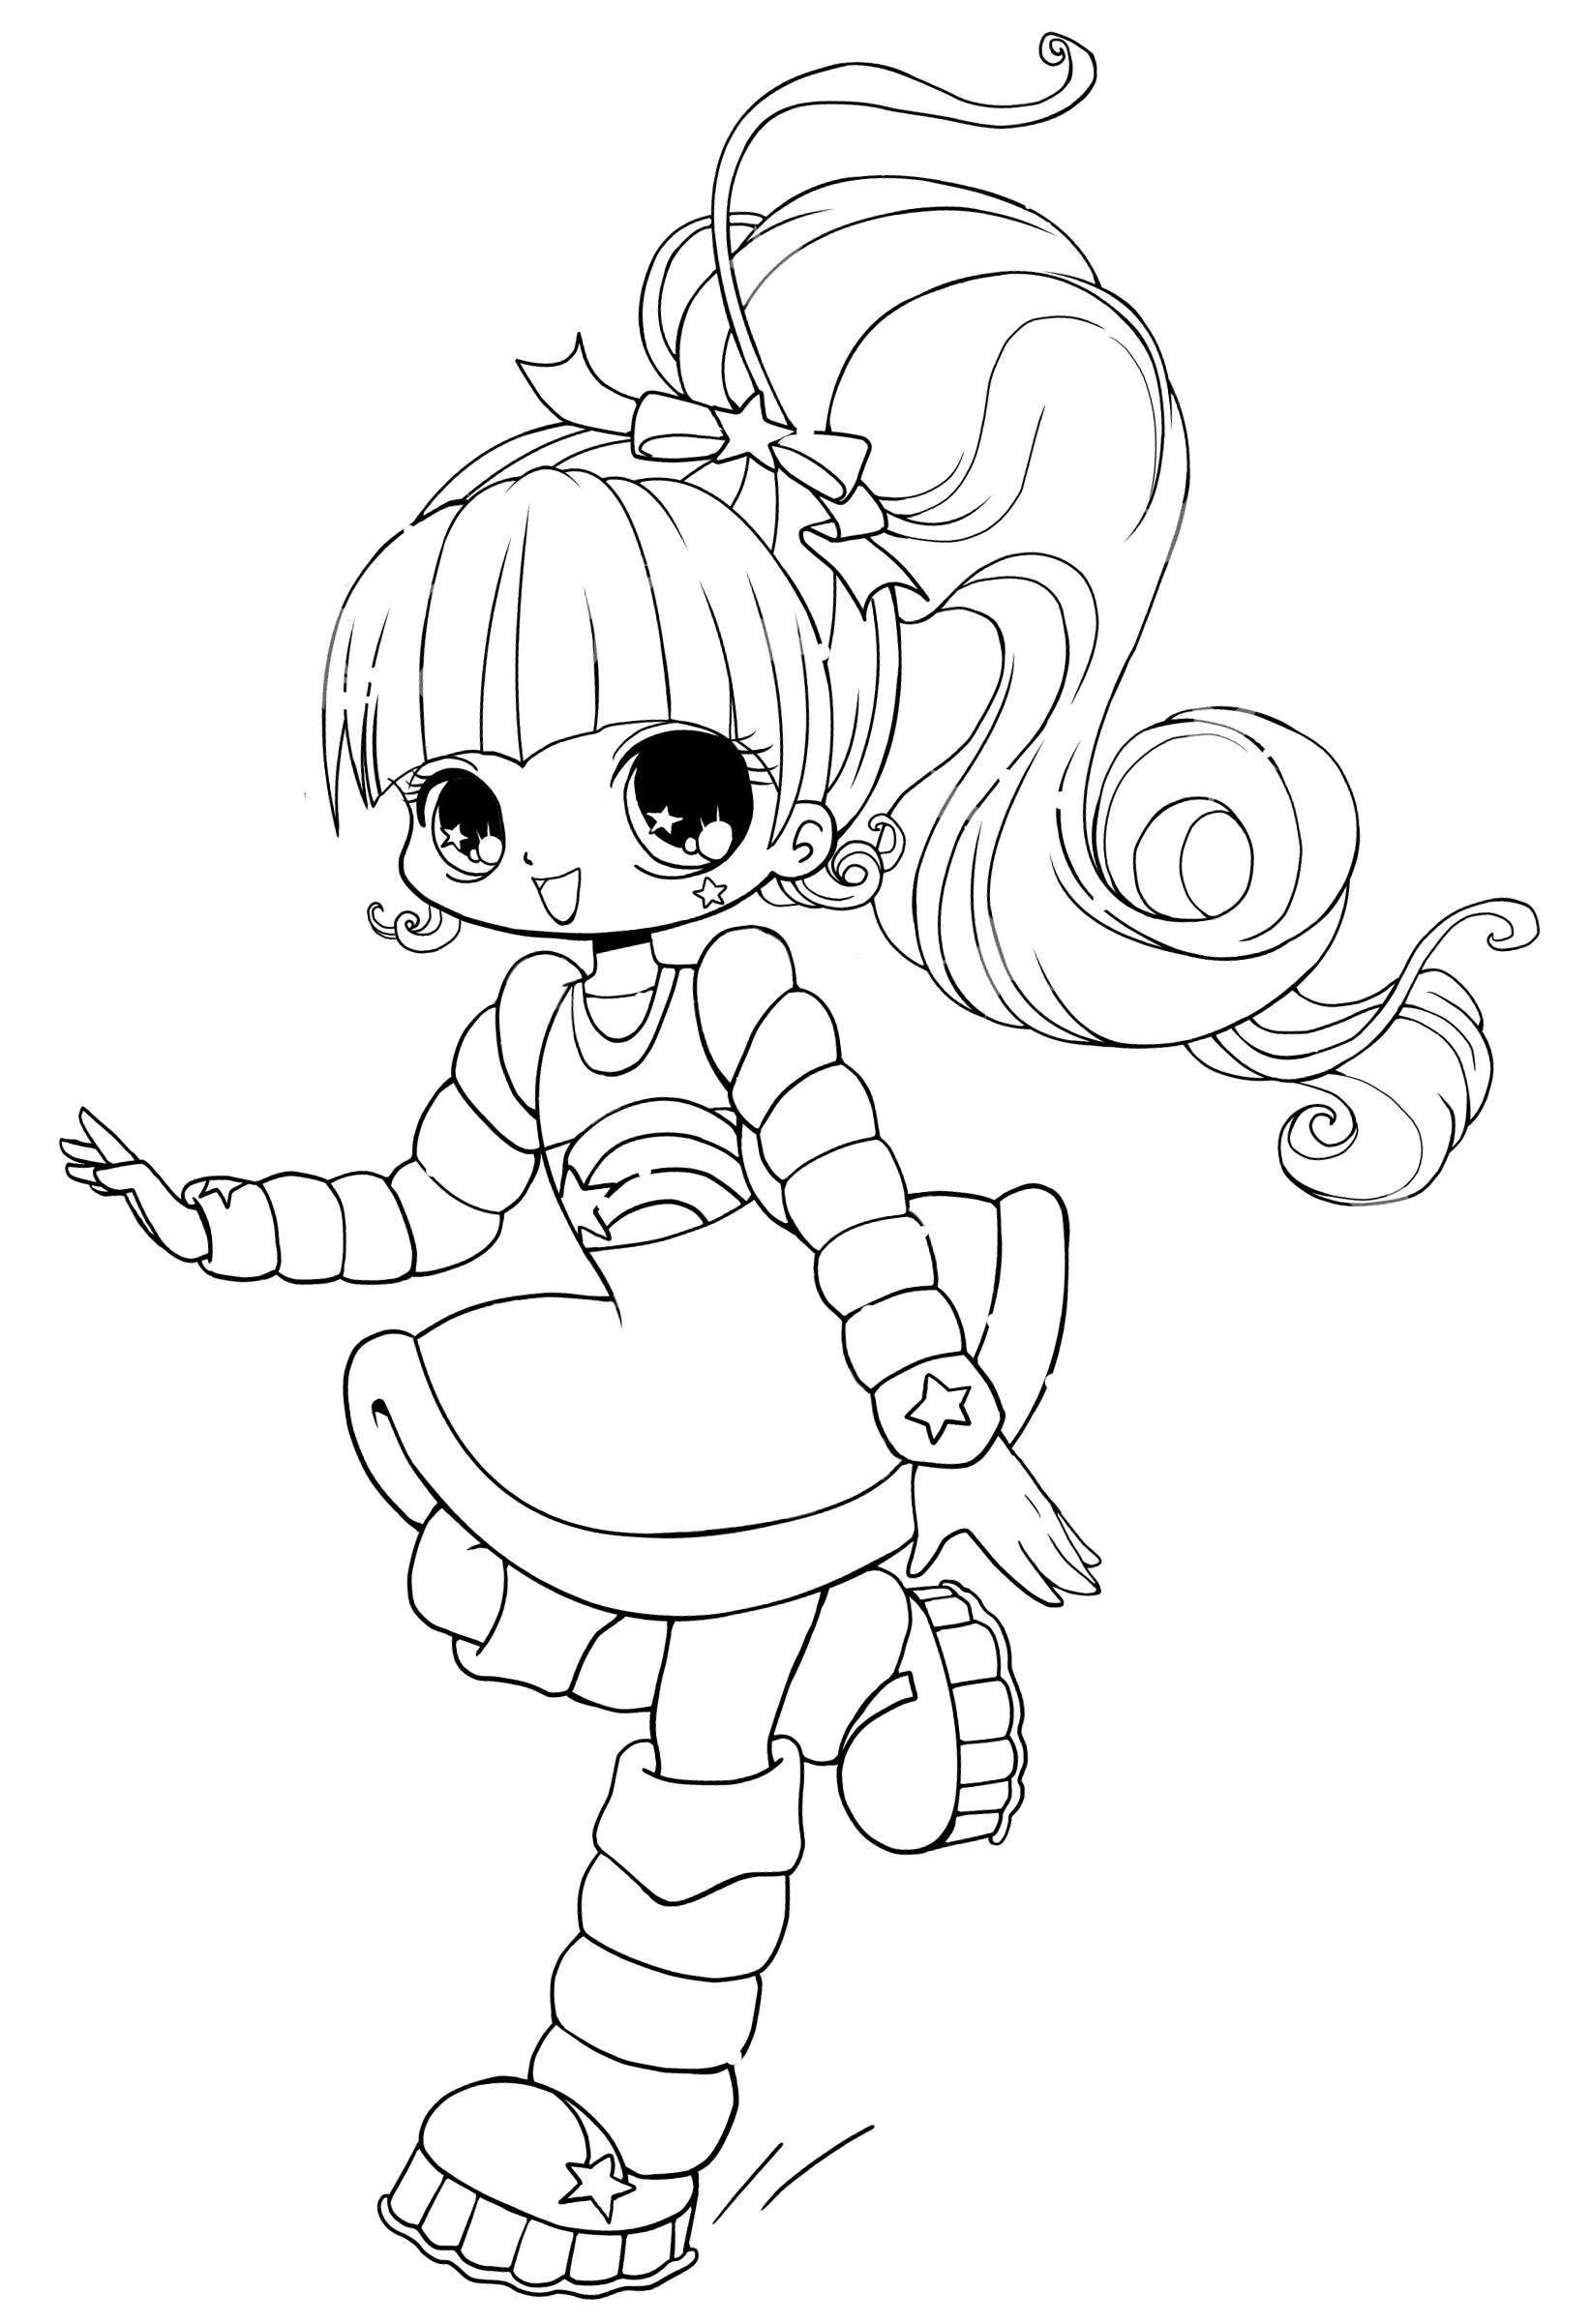 coloring cute girl cute coloring pages for girls bestappsforkidscom cute coloring girl